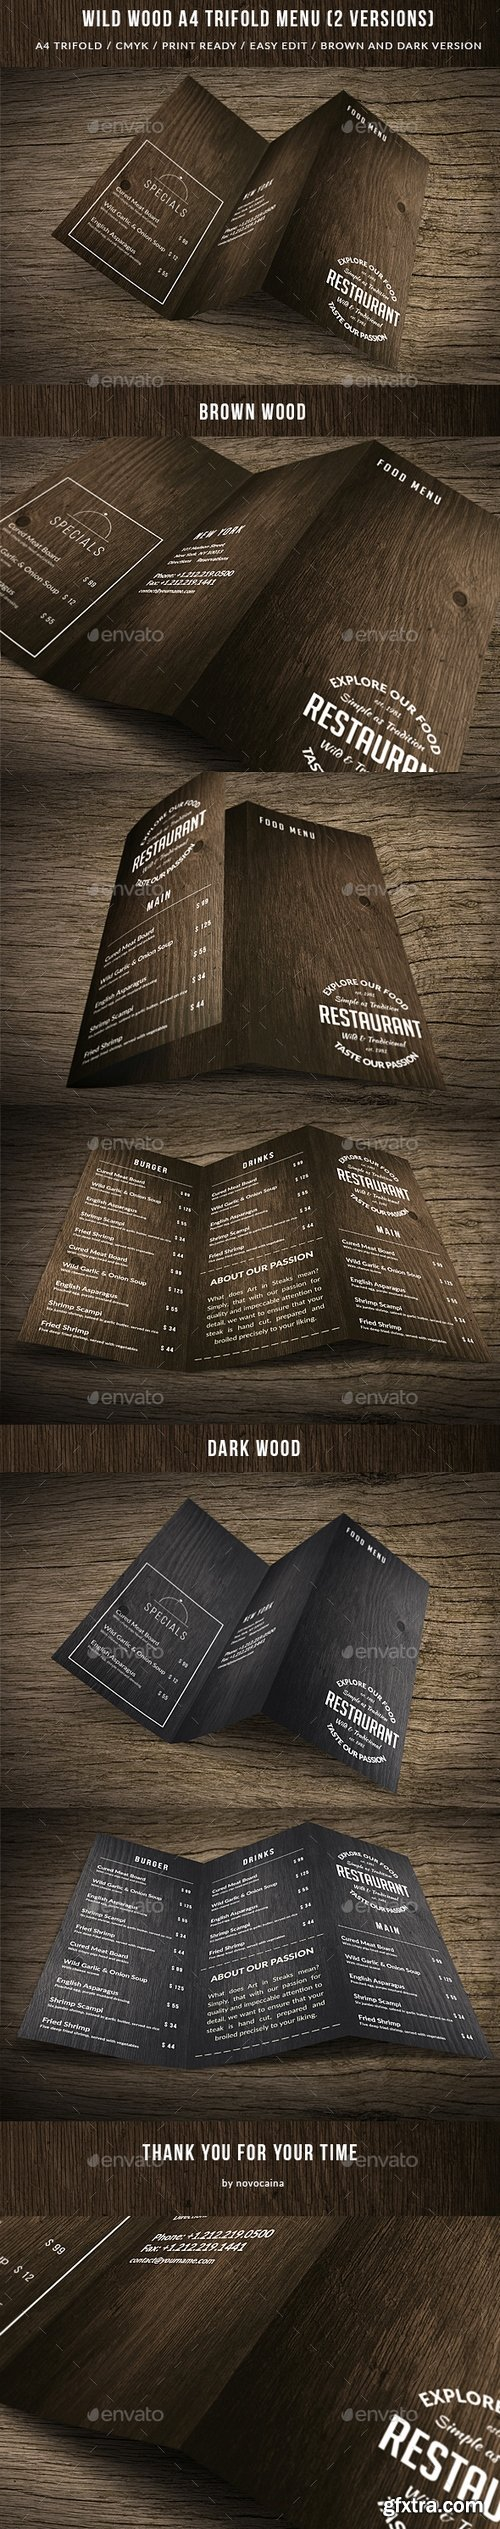 Graphicriver - Wild Wood A4 TriFold Menu - 2 Versions 15647677